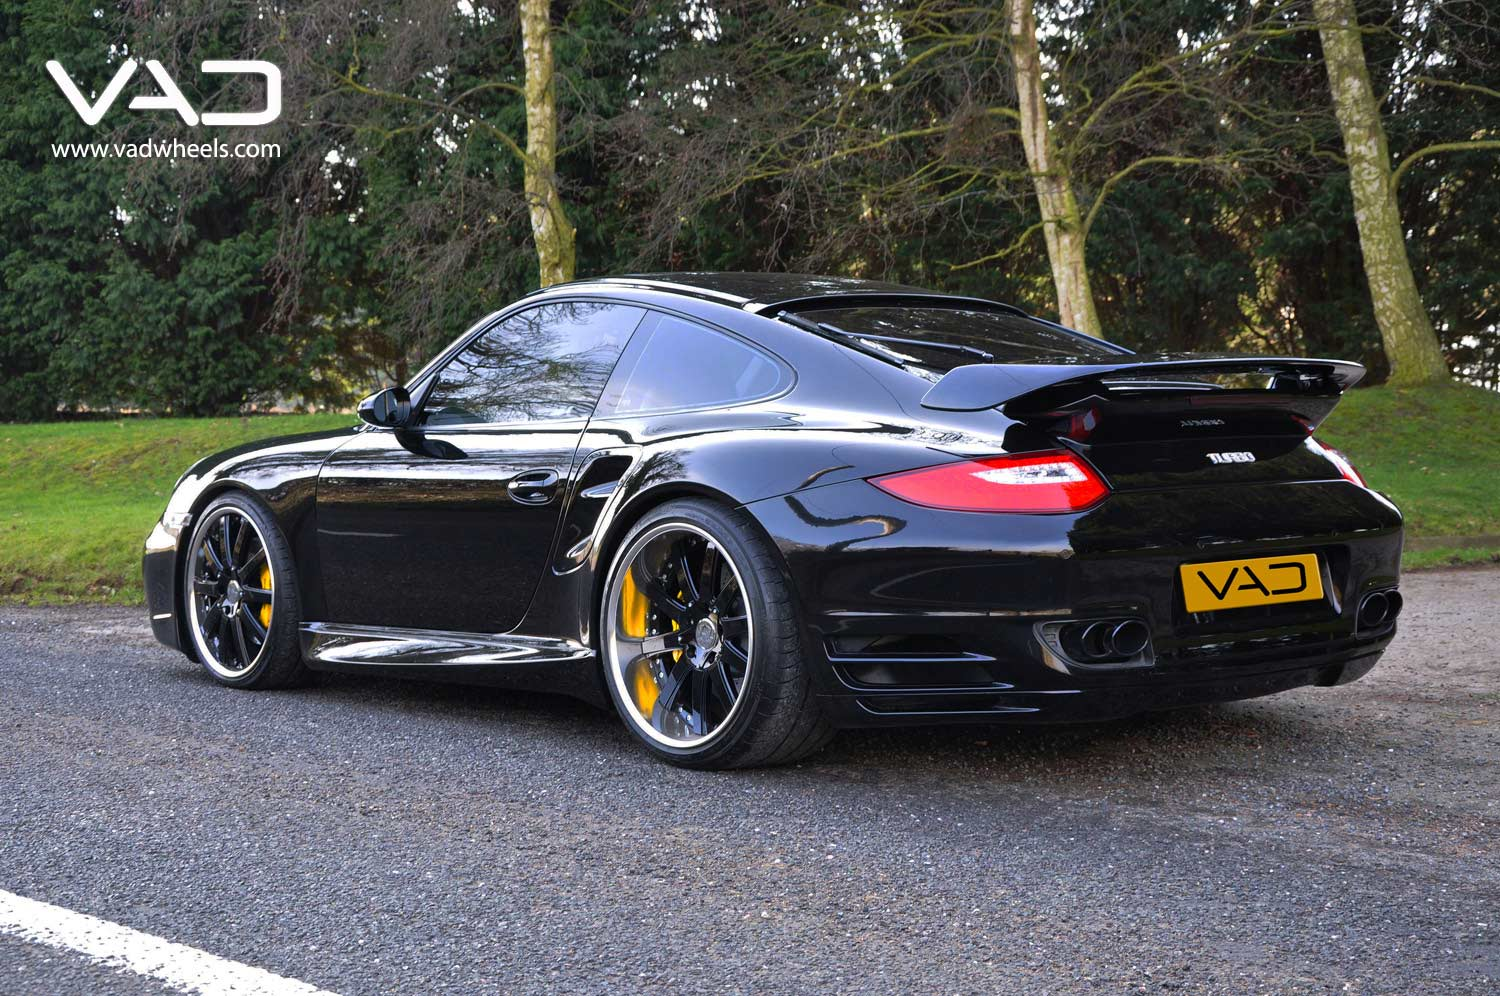 Porsche-997-Turbo-Fitted-With-20''-Altstadt-F100--Black-Chrome-Rim